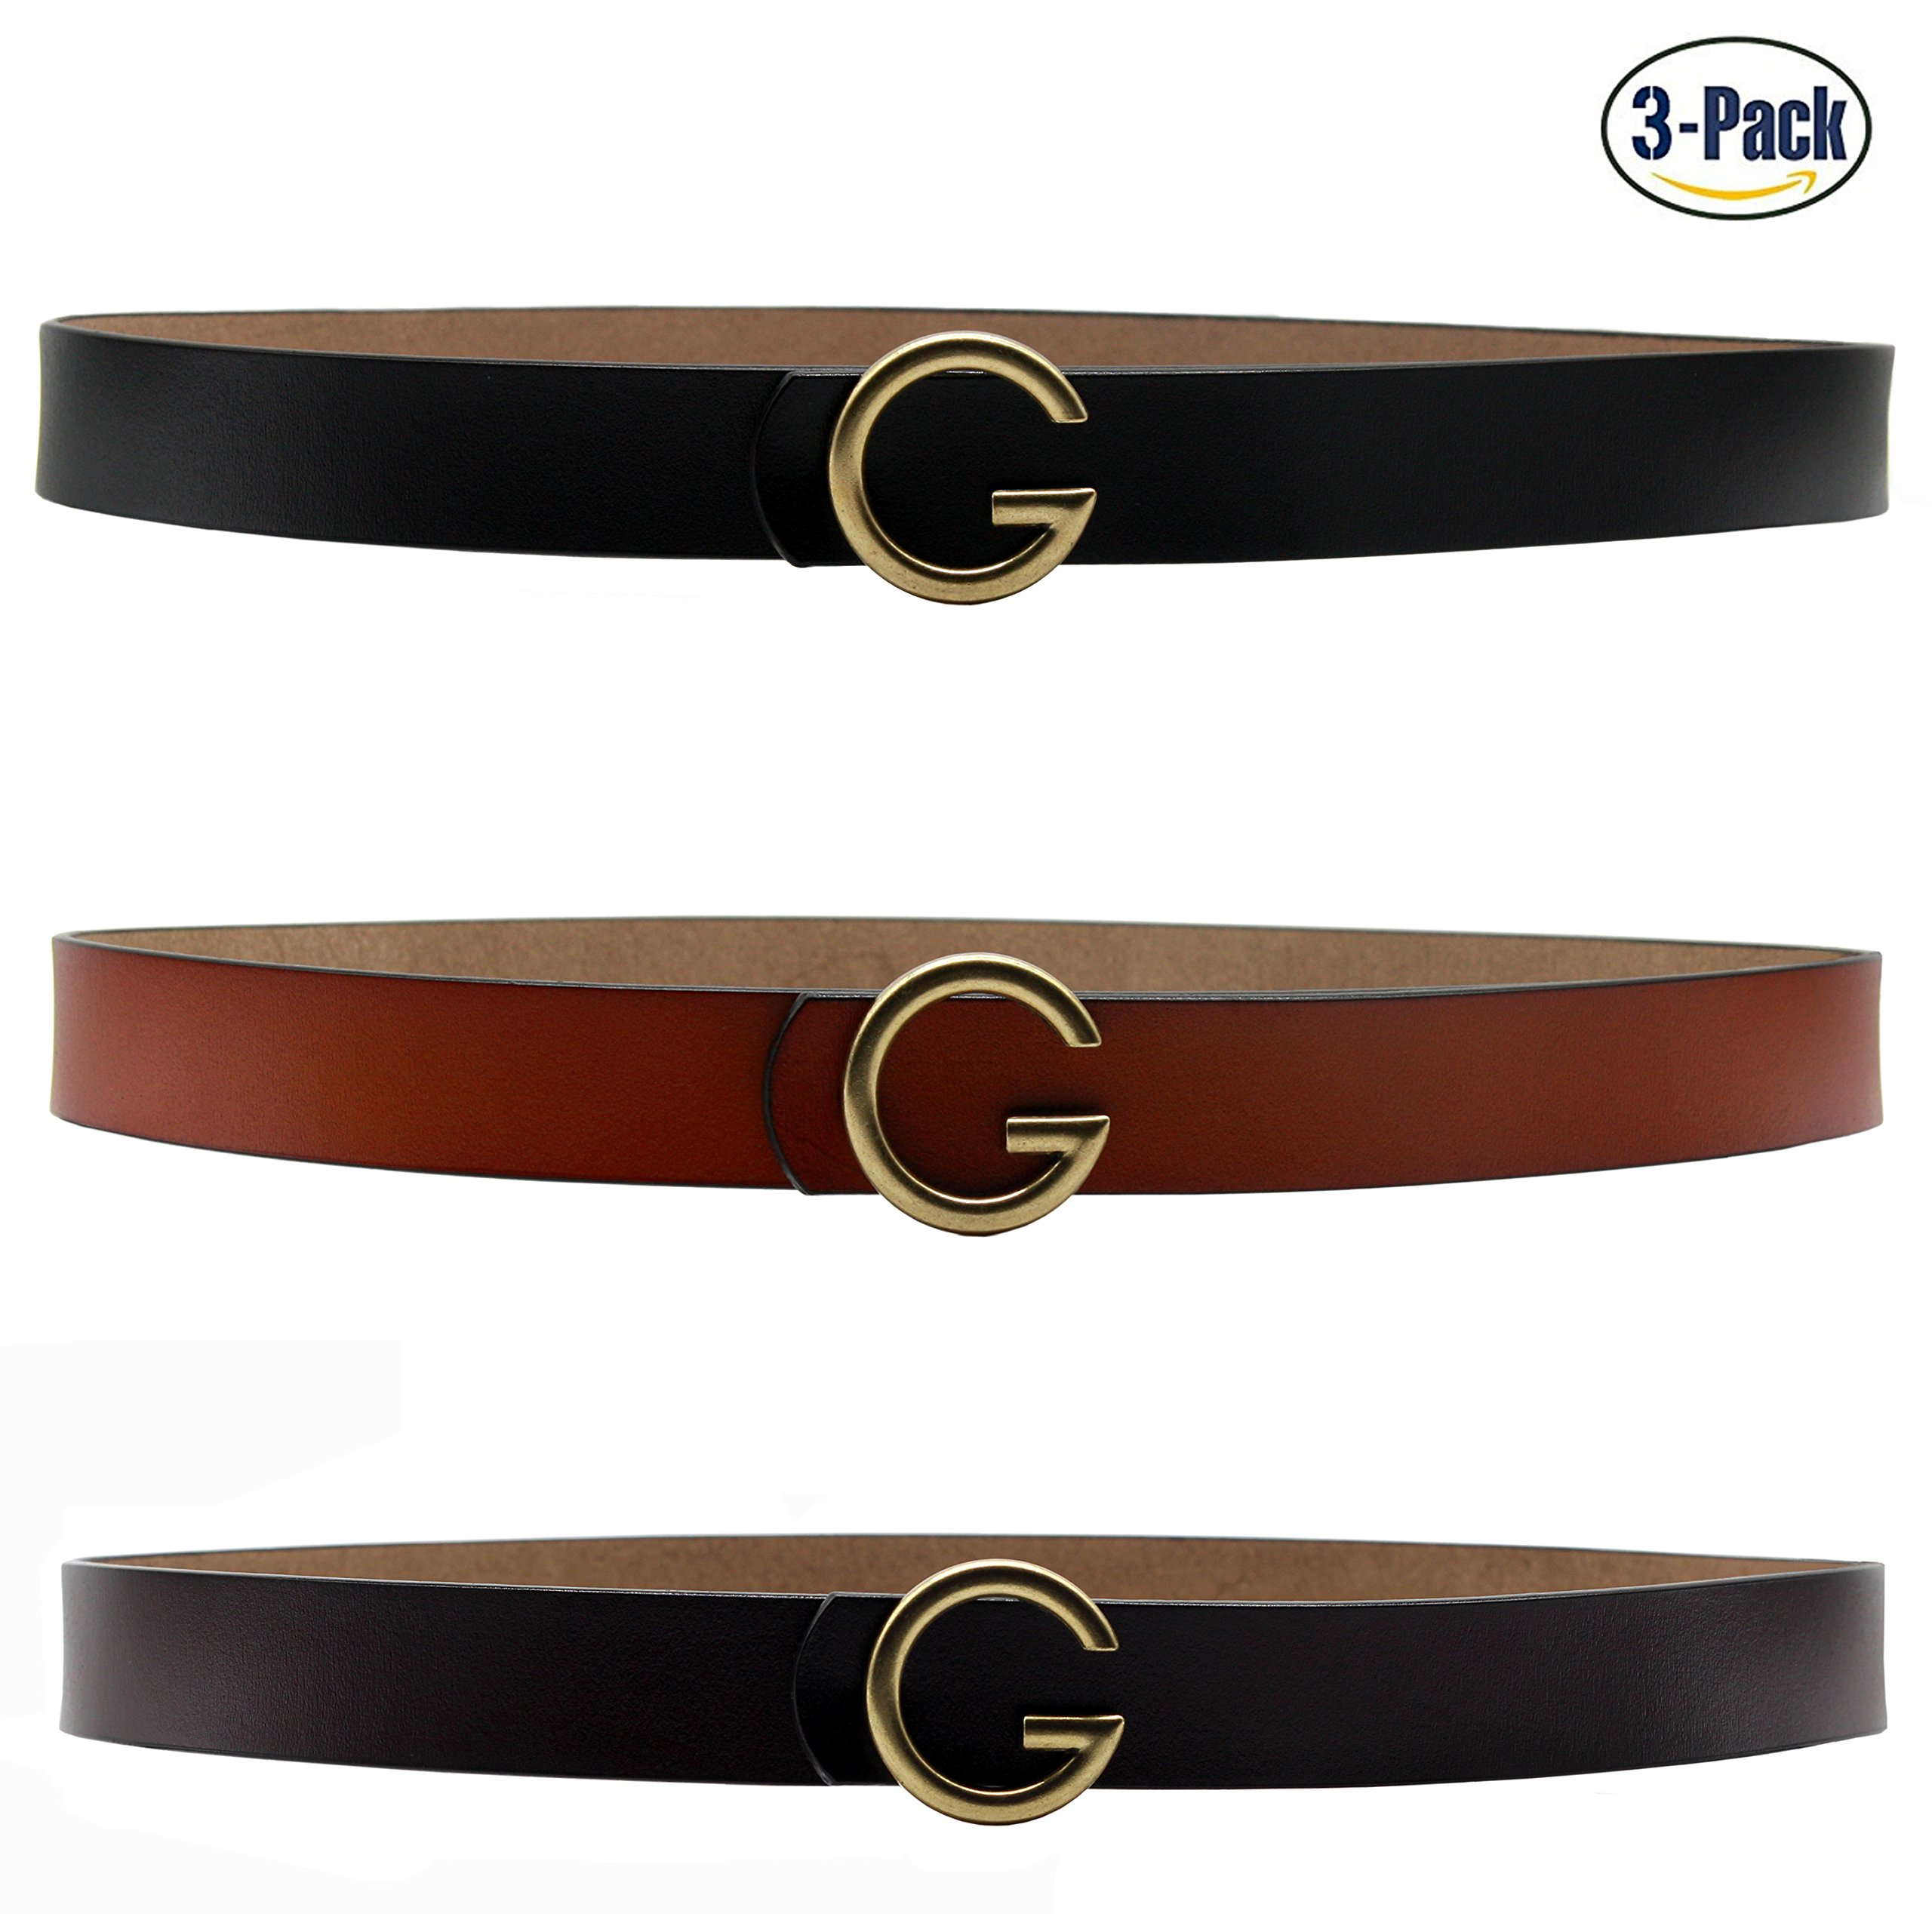 Set of 3 Women's Genuine Cowhide Leather Thin Dress Belt By ANDY GRADE (Style 2-Black,Brown,Orange)